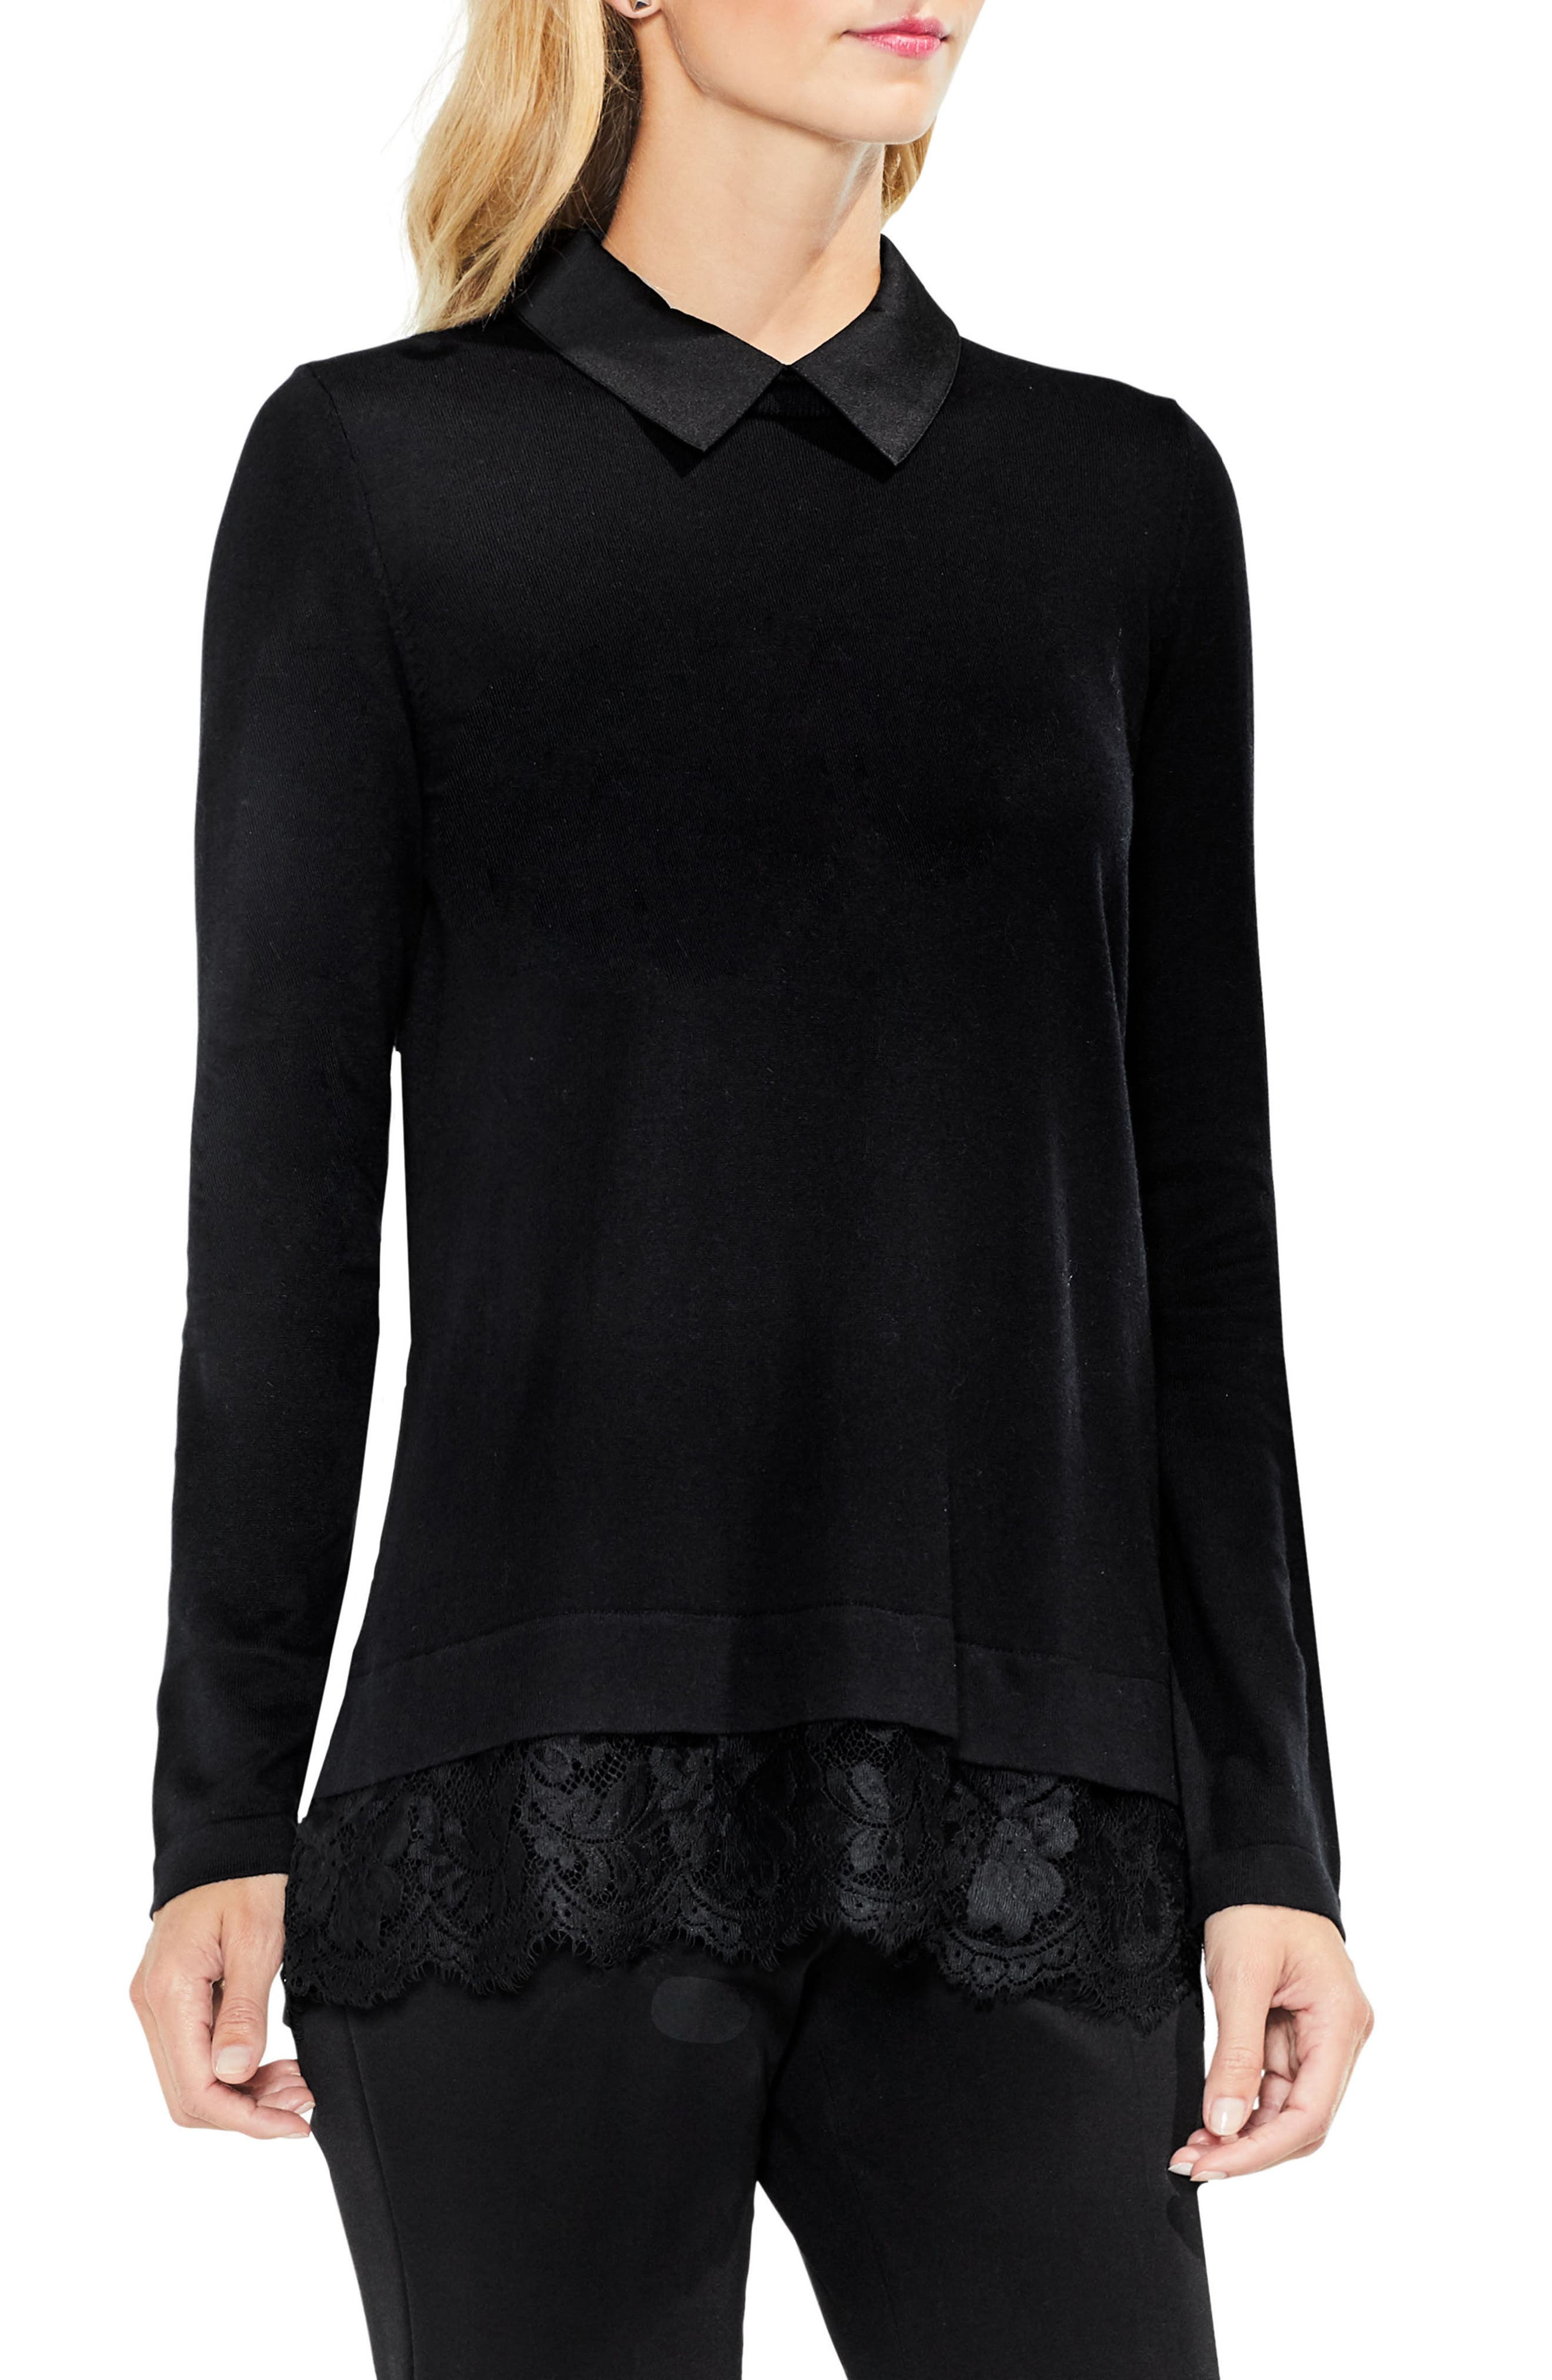 Alternate Image 1 Selected - Vince Camuto Lace Hem Collared Sweater